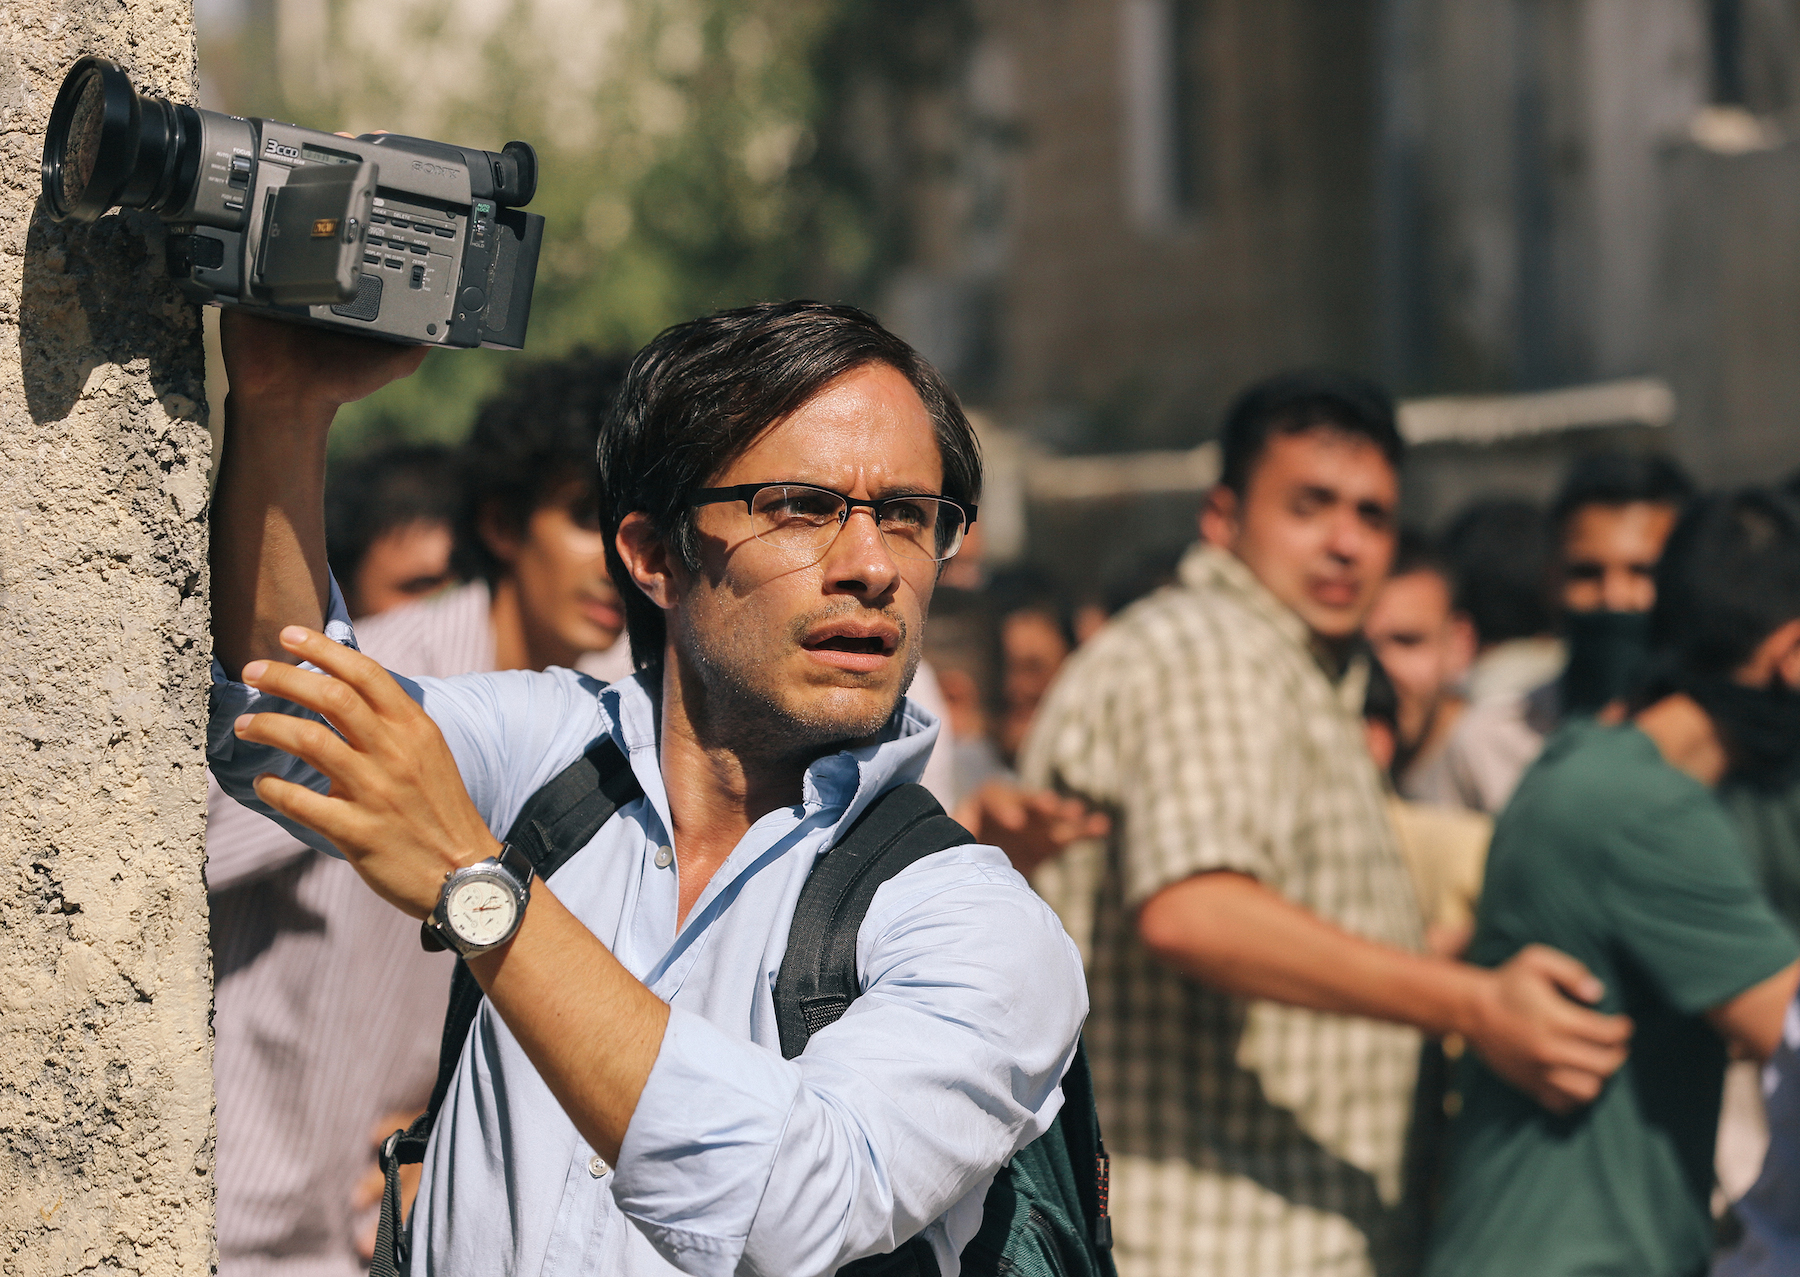 TRAILER: Gael Garcia Bernal Stars as Iranian Journalist in Jon Stewart's Intense Directorial Debut